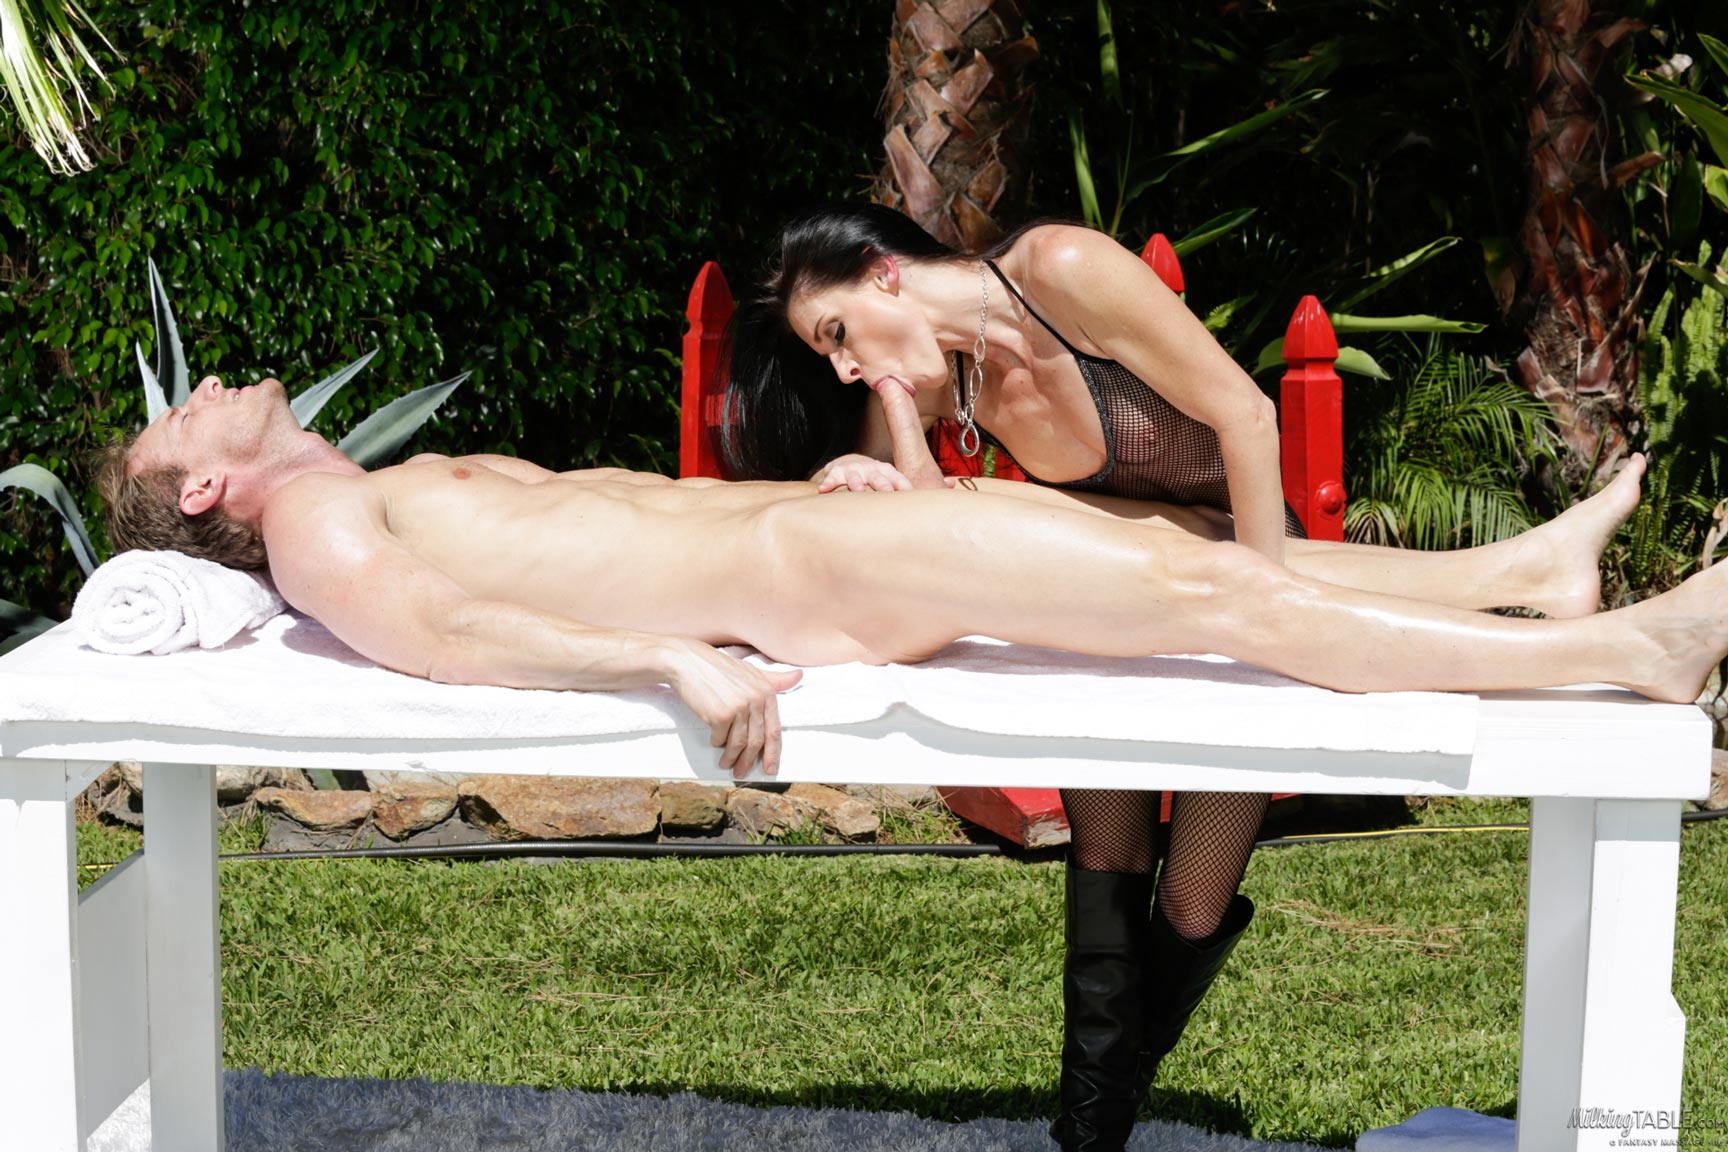 India Summer In The Kinky Wife Full Hd Gratis Porn-9693